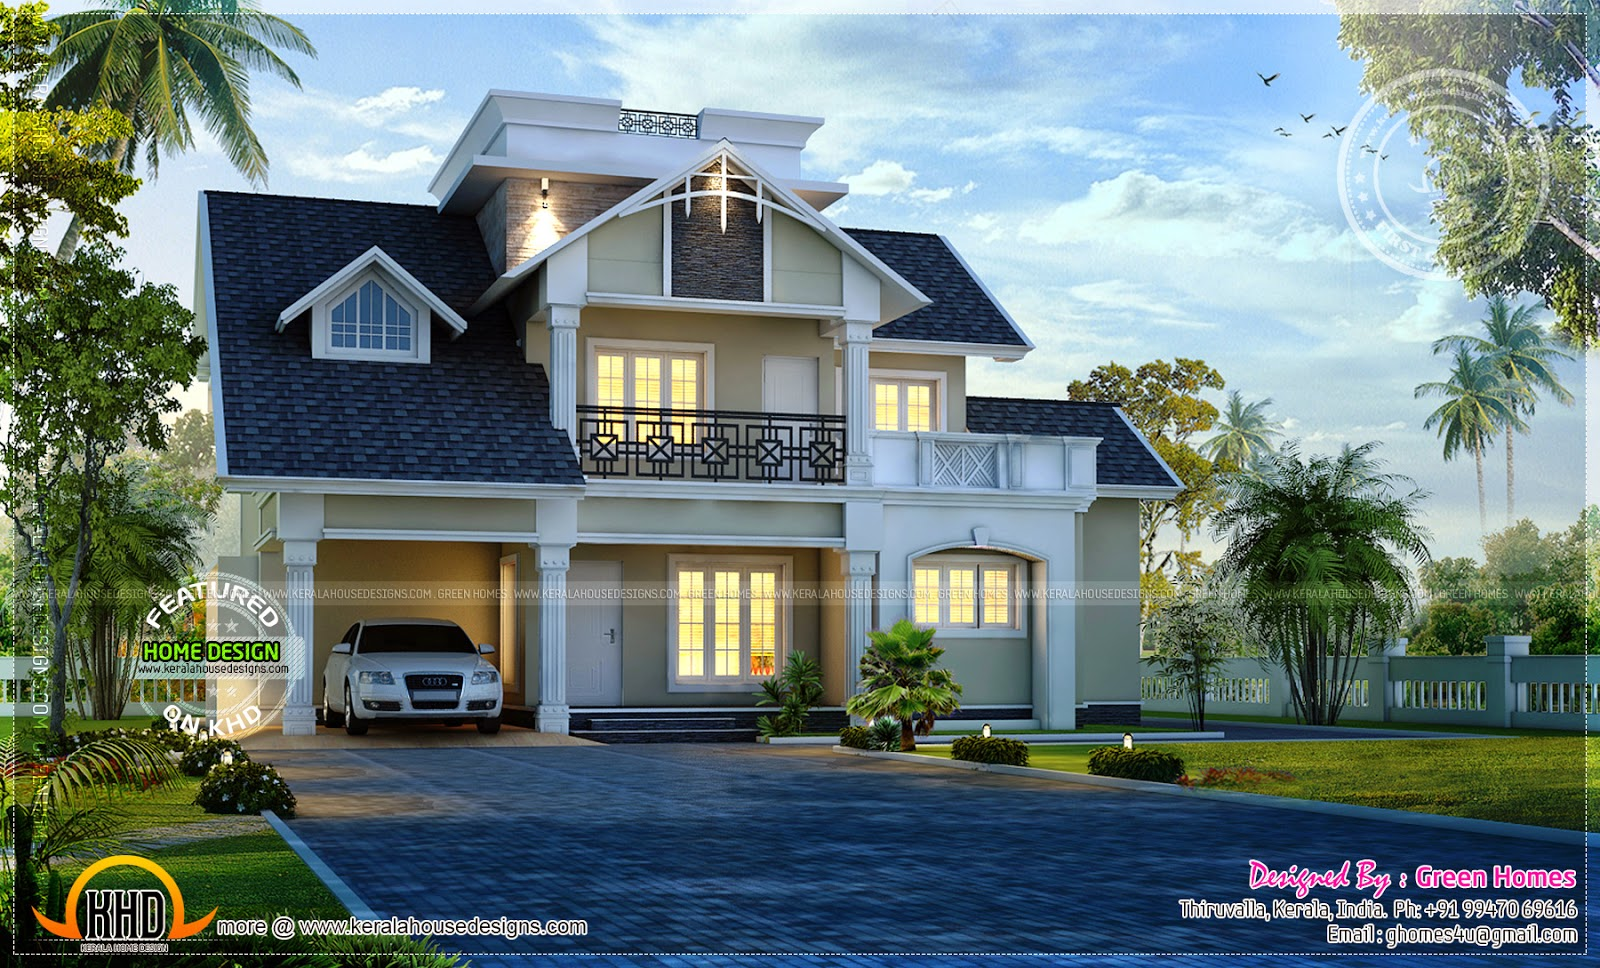 Awesome modern house exterior kerala home design and for Home design sites